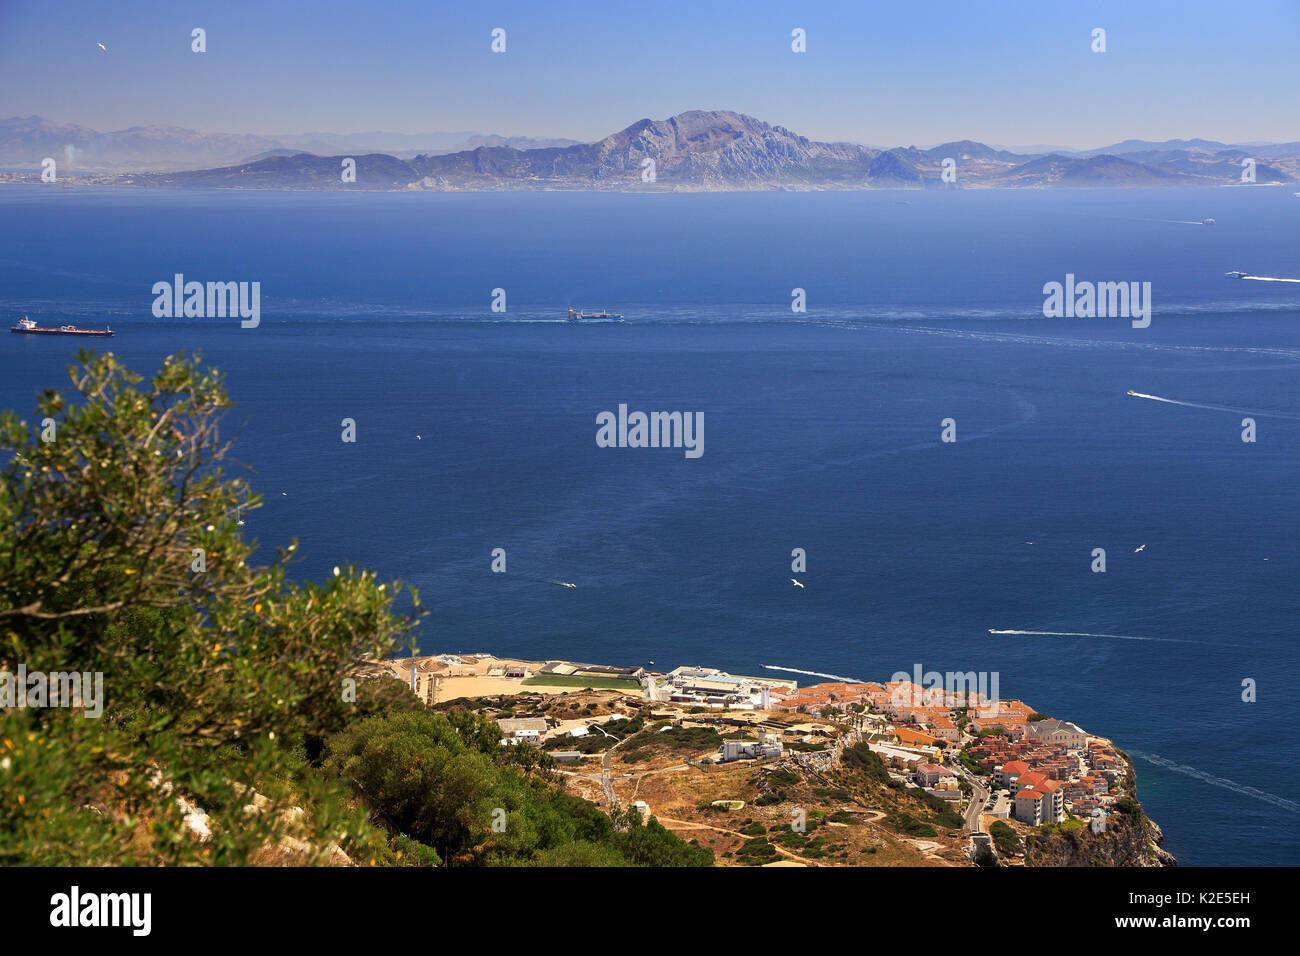 Gibraltar morocco stock photos gibraltar morocco stock - Moroccan port on the strait of gibraltar ...